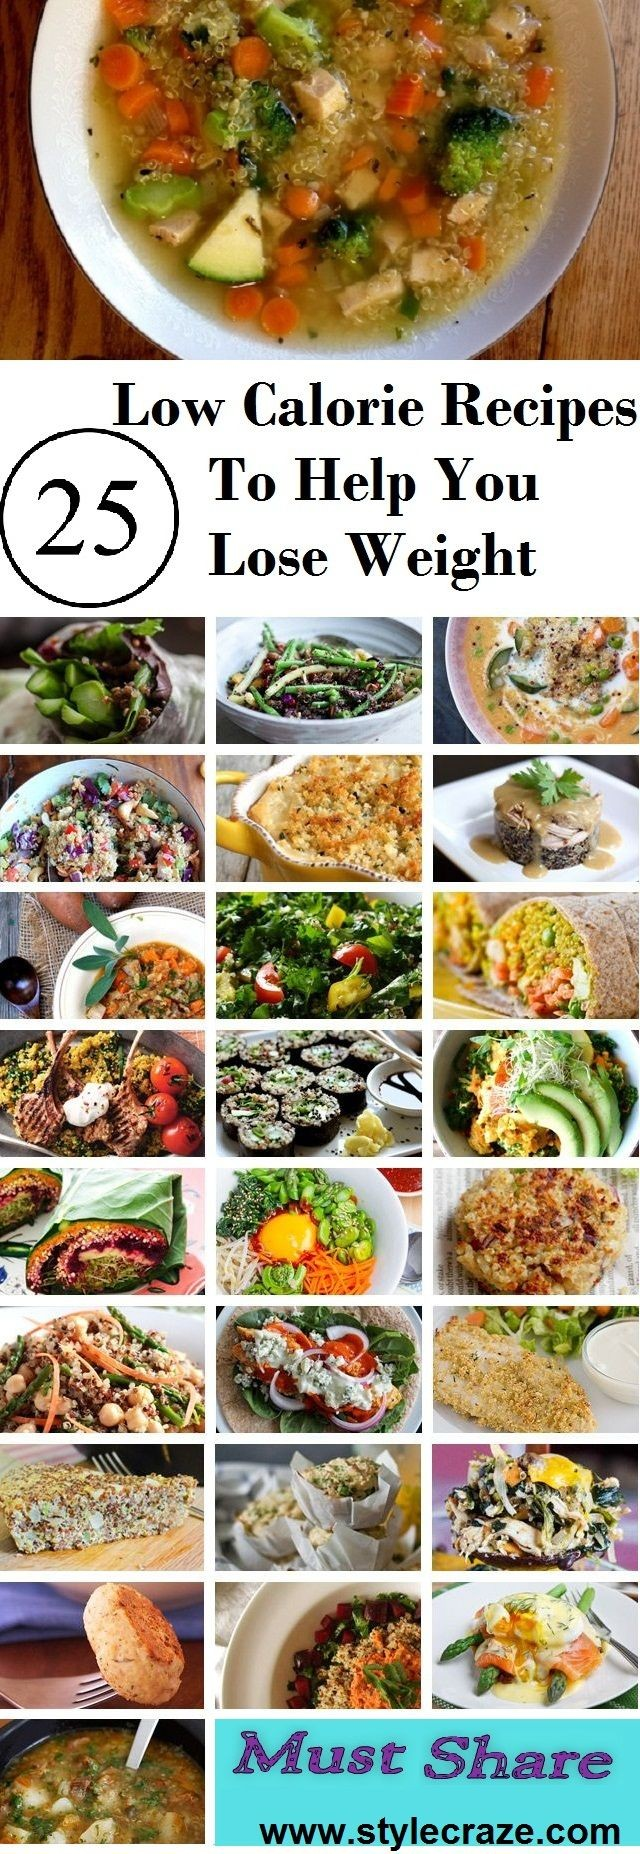 Low Calorie Recipes For Weight Loss: Low calorie d...